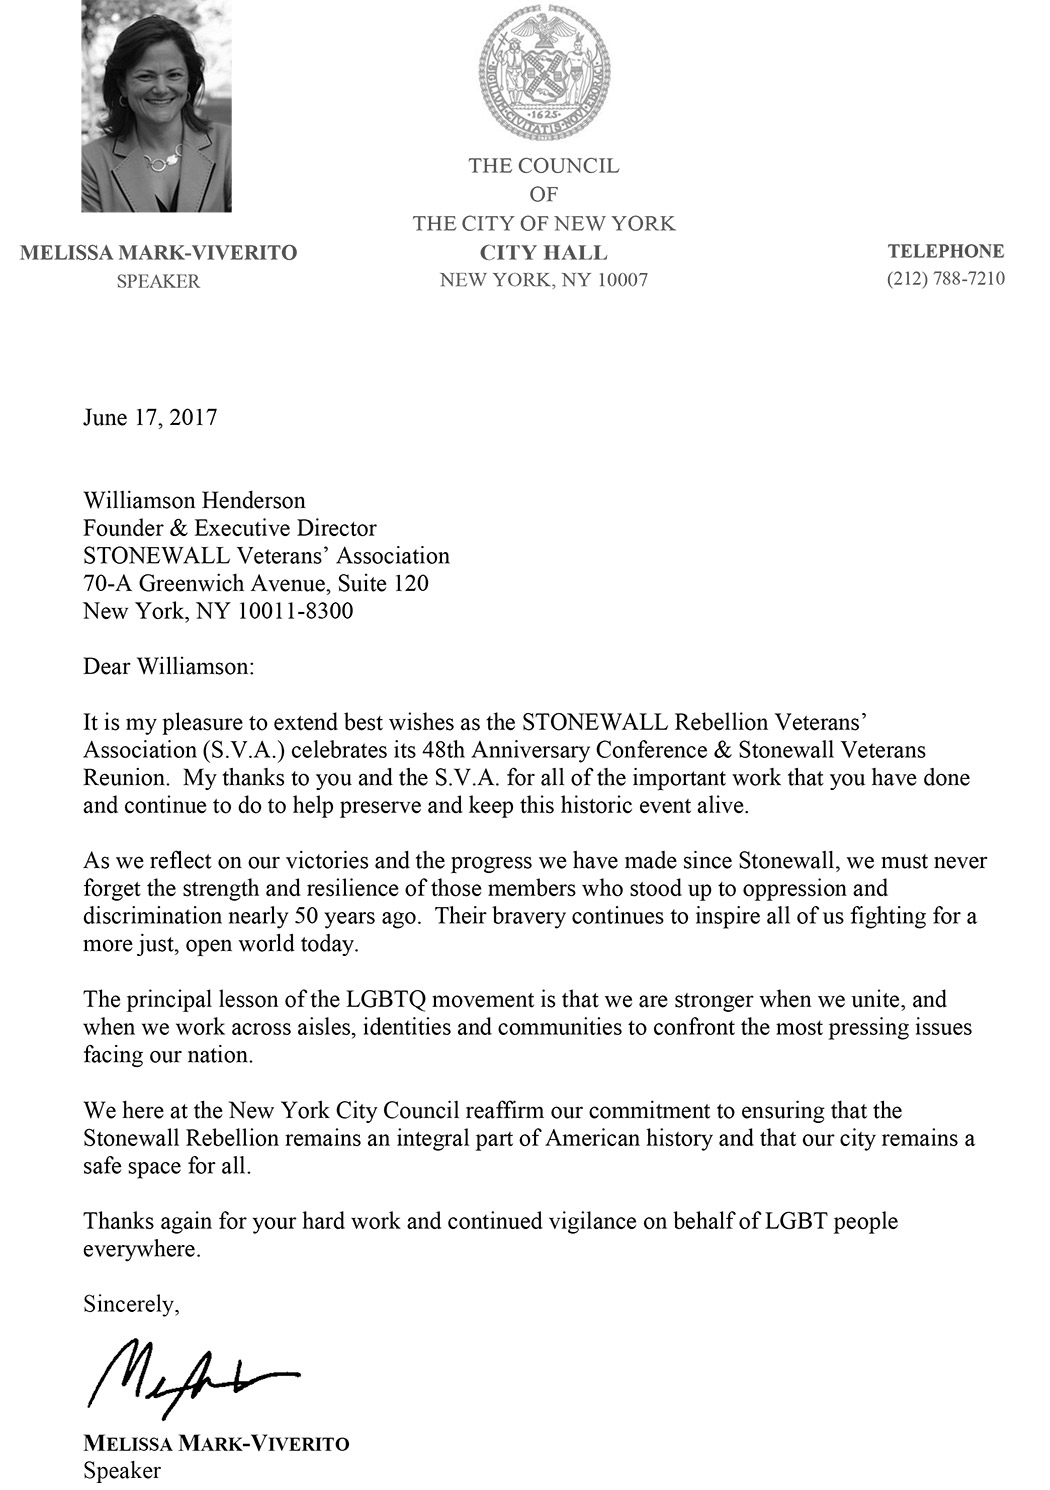 2017 - Council Speaker Melissa Viverito's Letter to the STONEWALL Vets